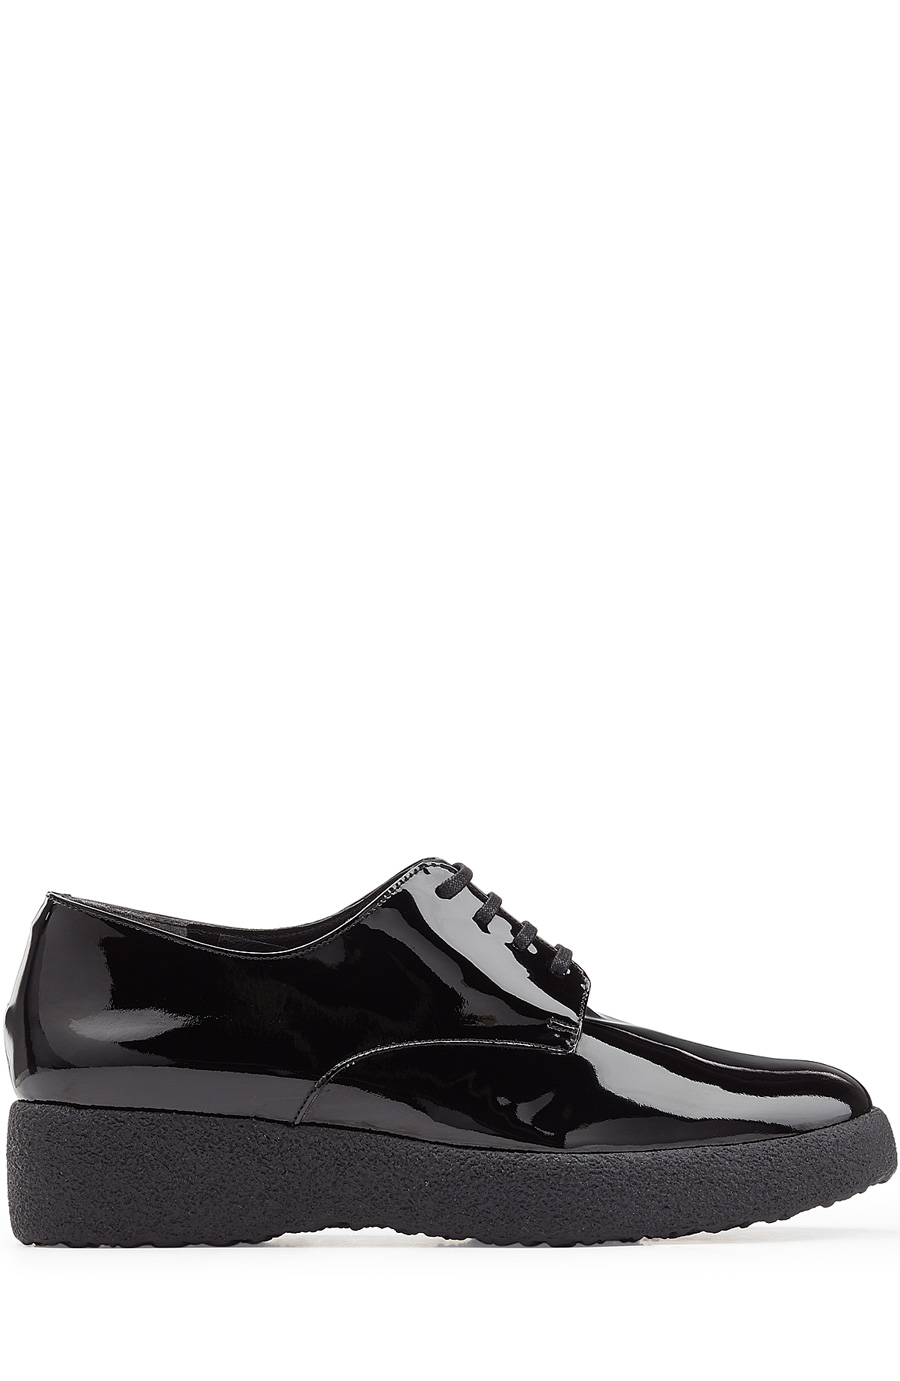 Robert Clergerie Feydol Patent Leather Platform Oxfords In Black